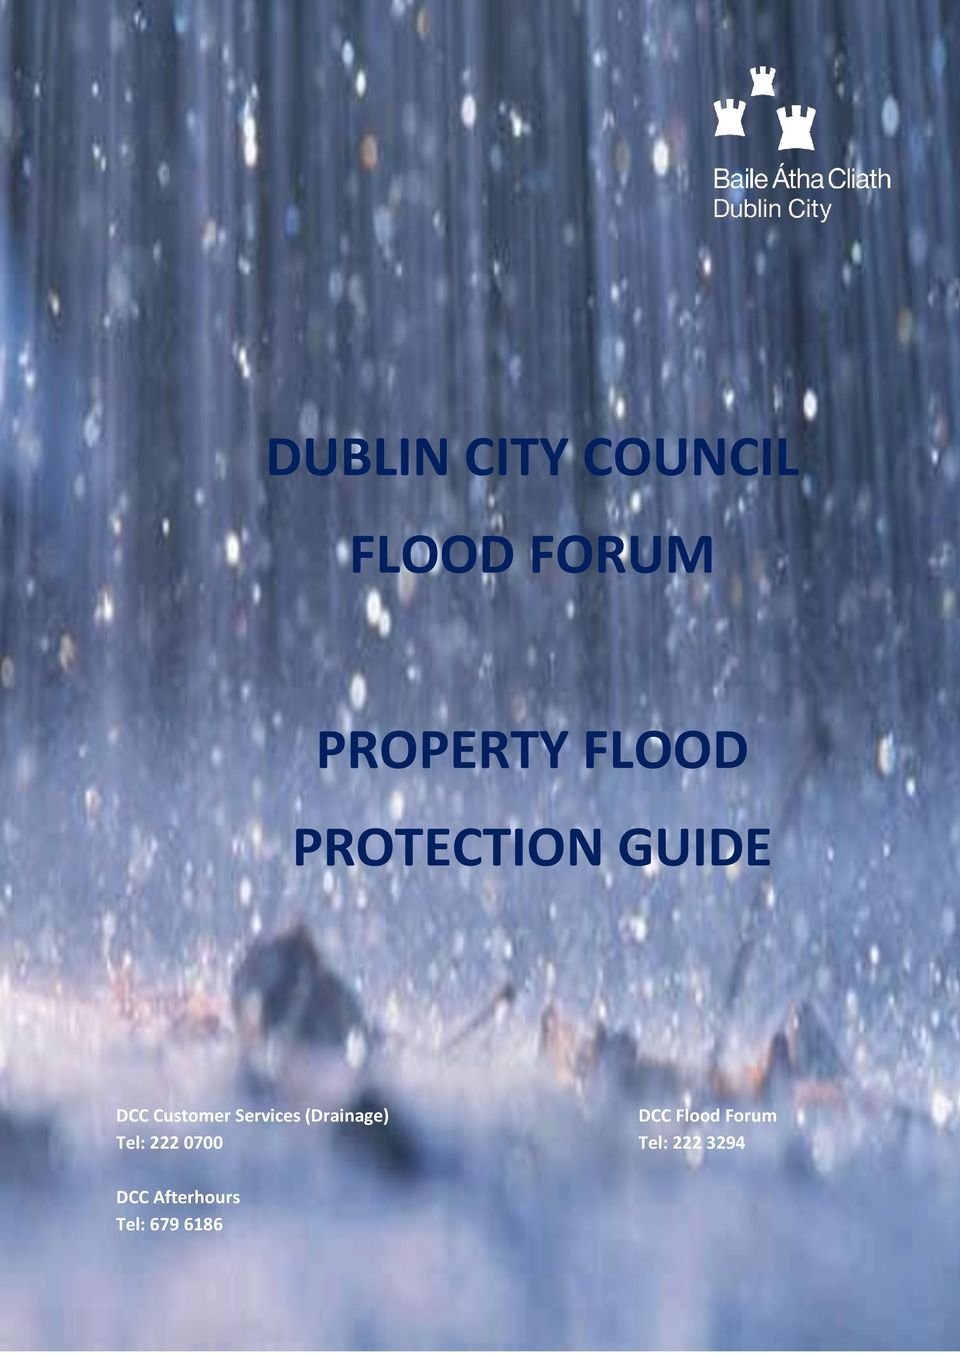 (Drainage) DCC Flood Forum Tel: 222 0700 Tel: